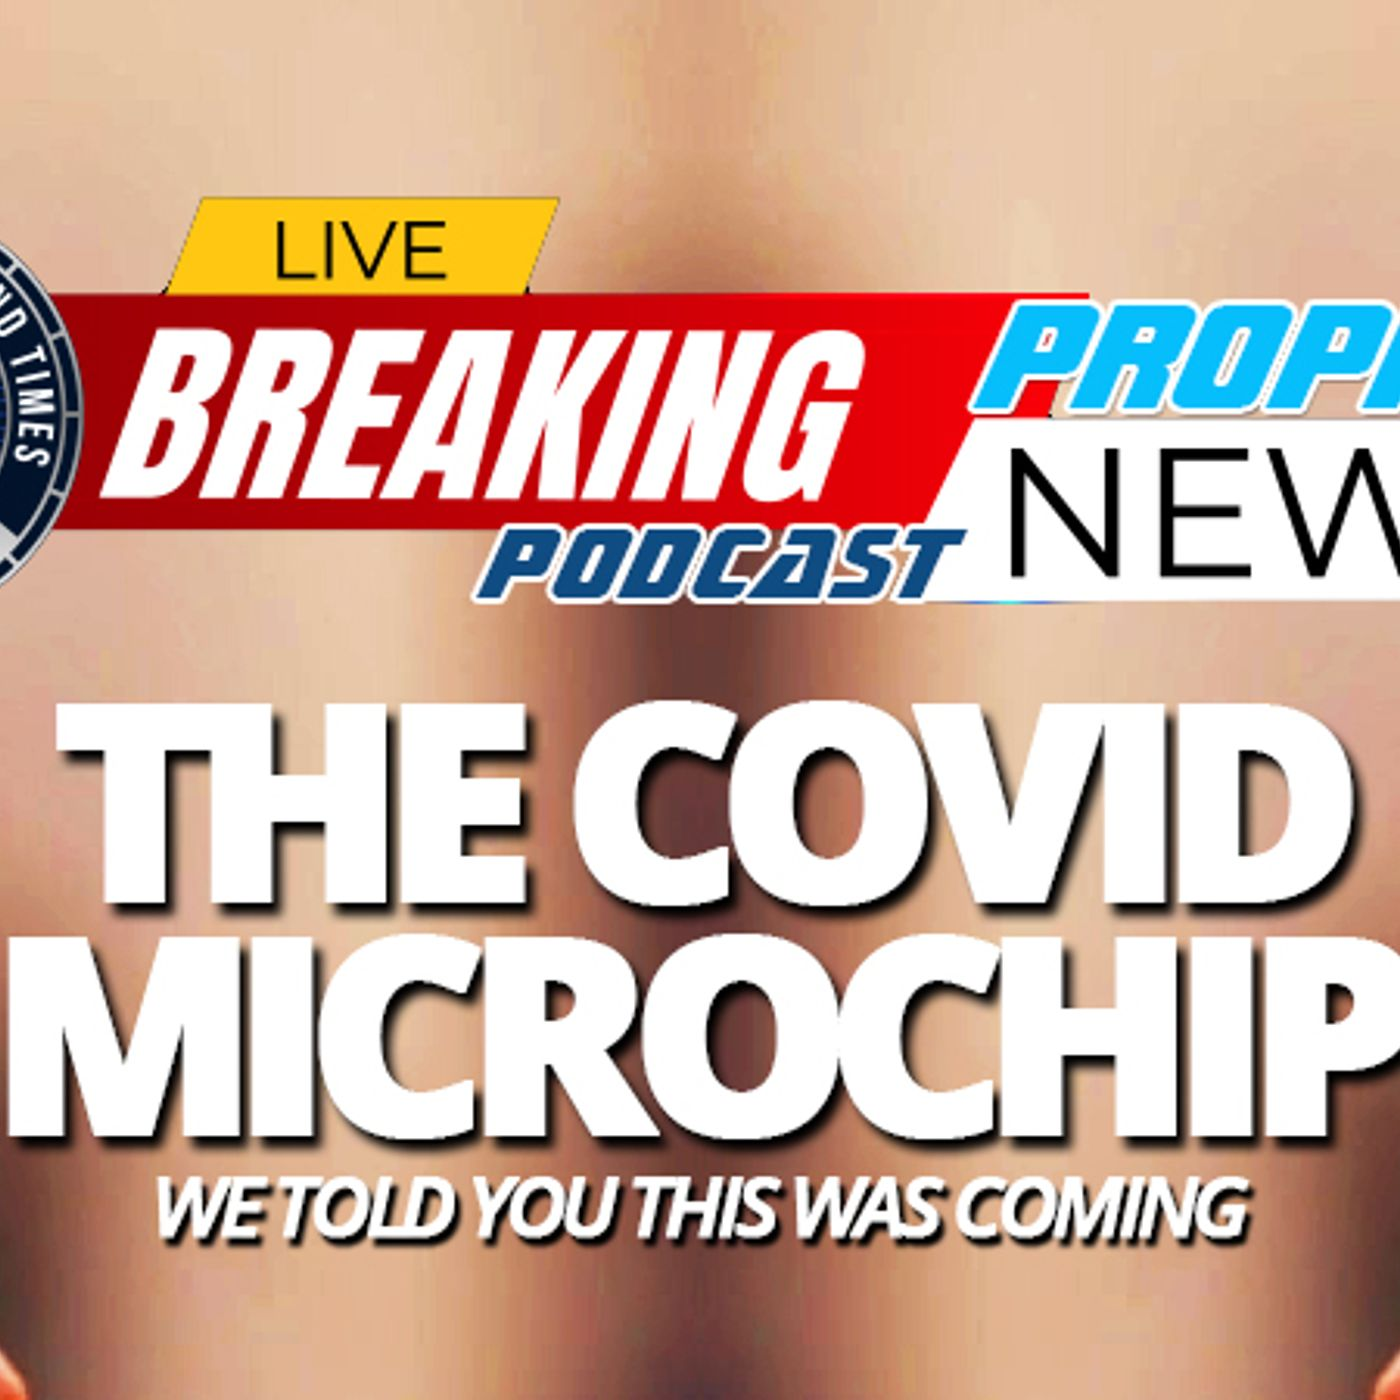 NTEB PROPHECY NEWS PODCAST: DARPA Reveals They Are Working On A Human Implantable Biometric Microchip To Fight Against The COVID Virus